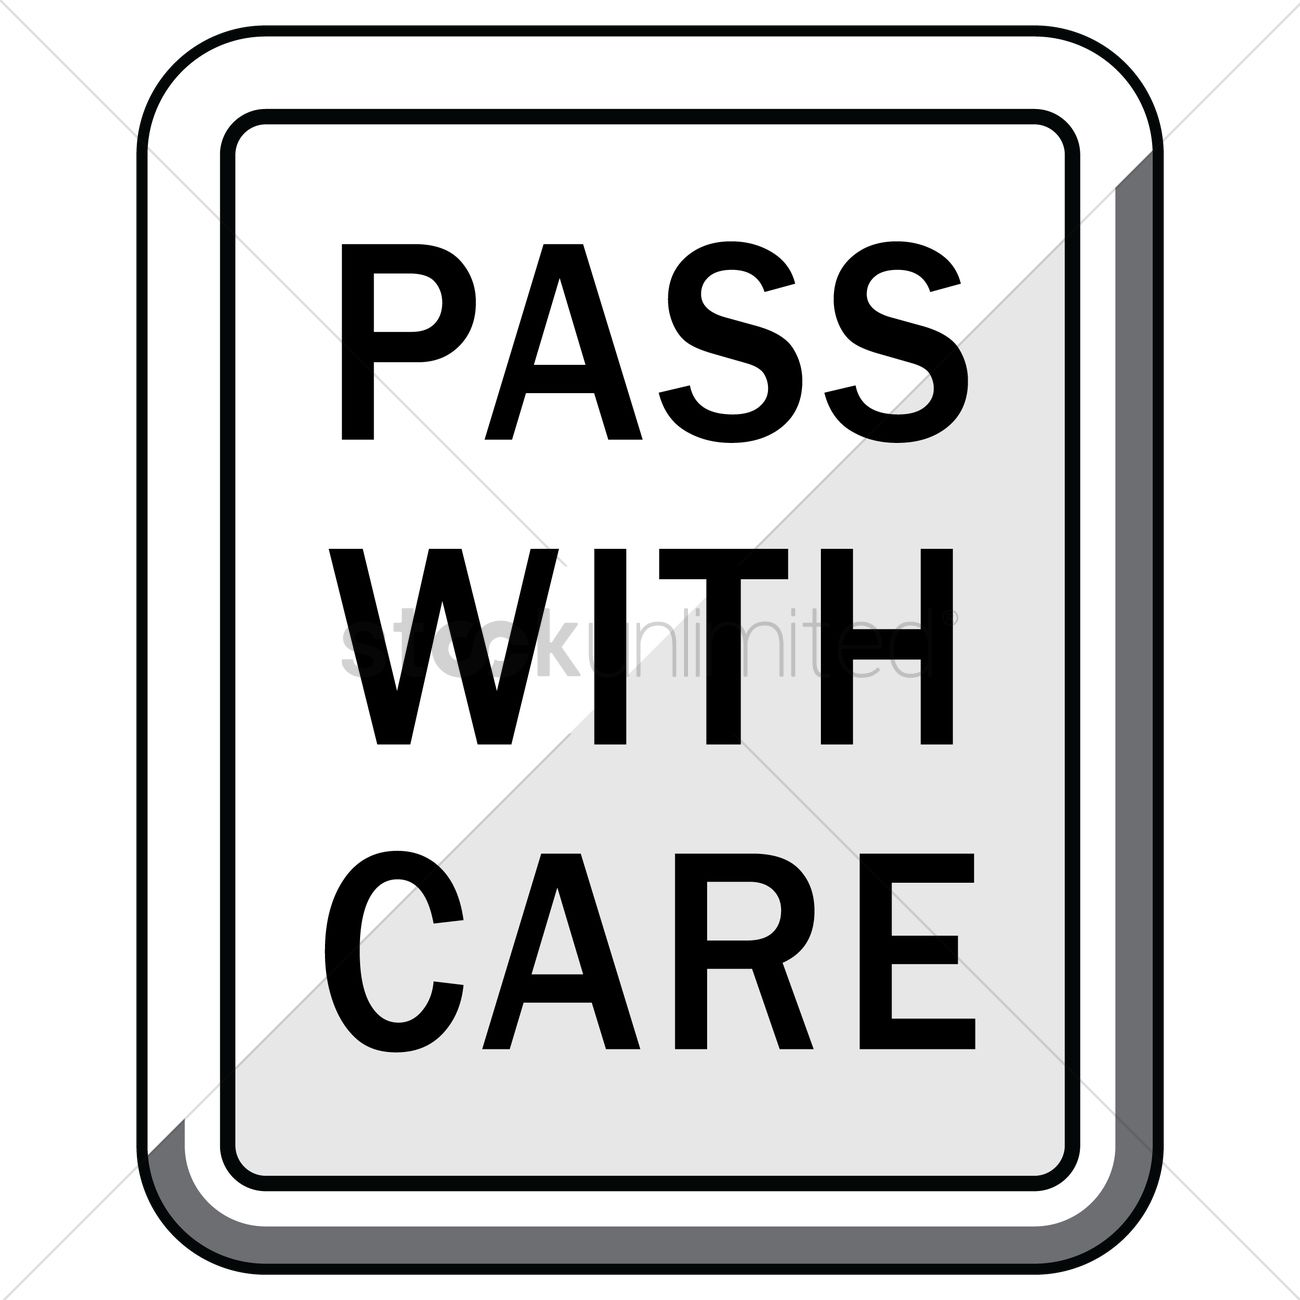 Pass with care road sign Vector Image.